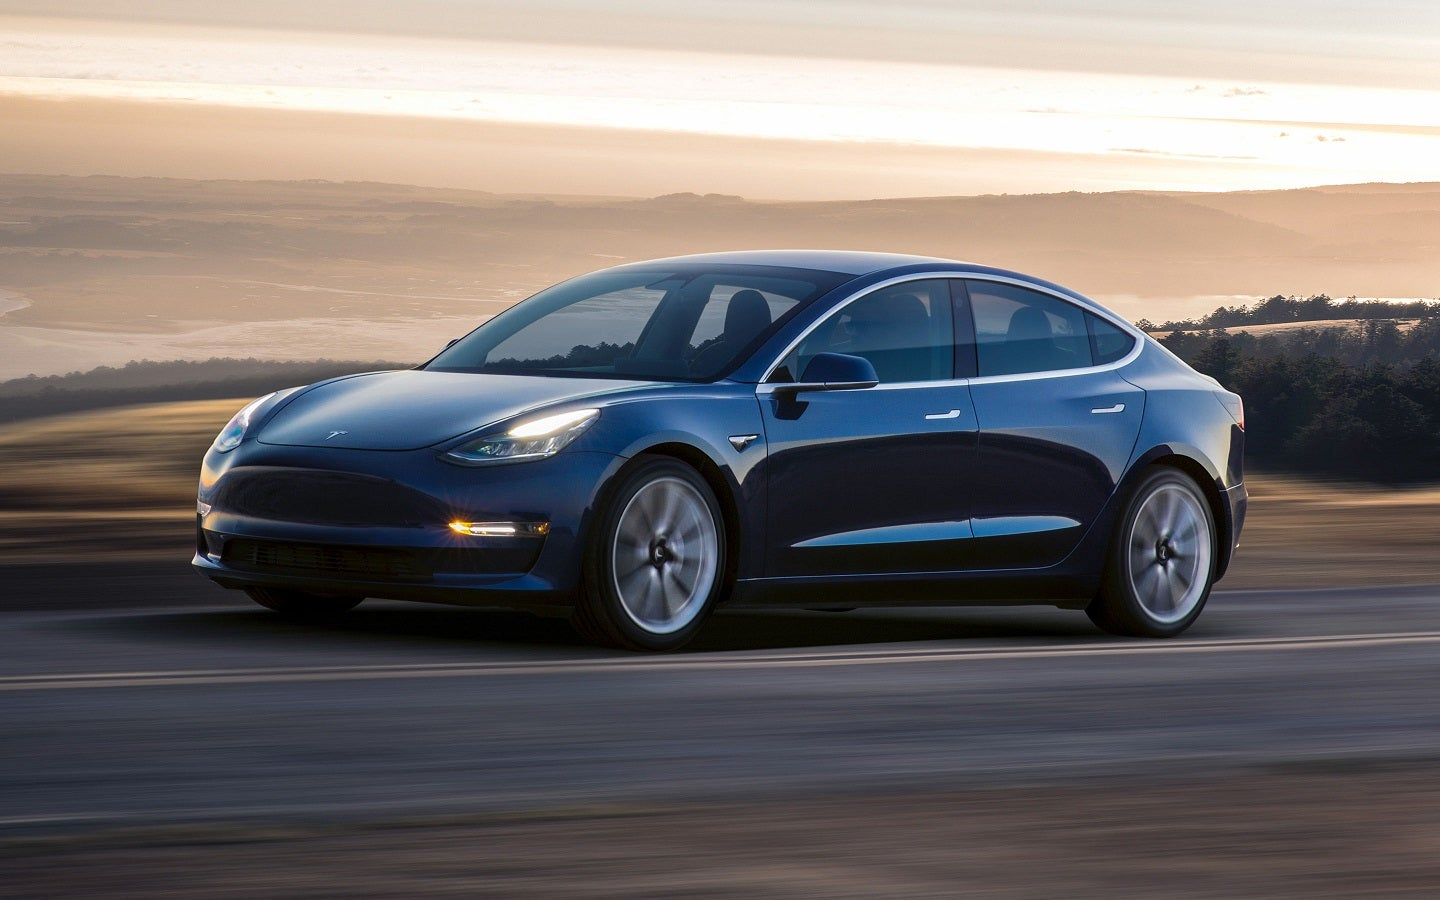 Midday Stock Market News: Tesla Cuts Prices Again, Chipotle